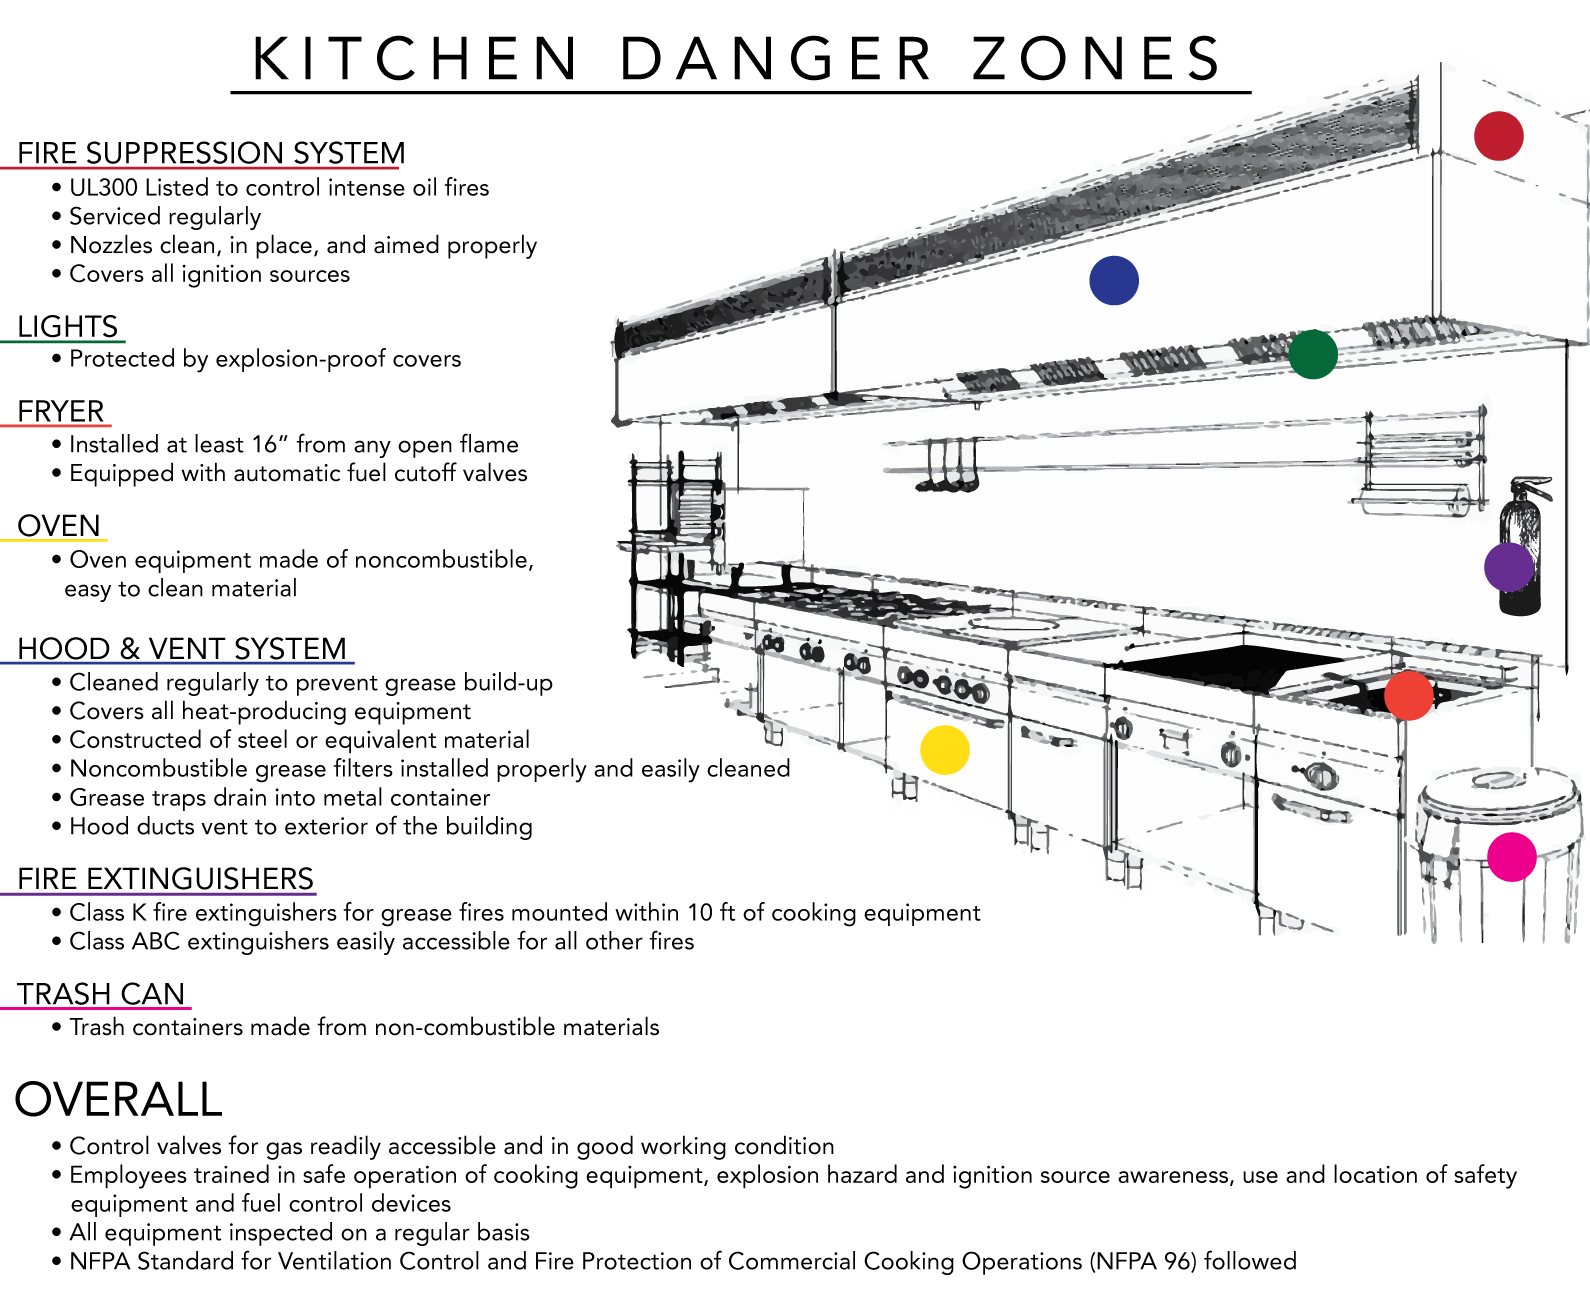 Fire Safety in the Kitchen {Please Learn from My Mistakes